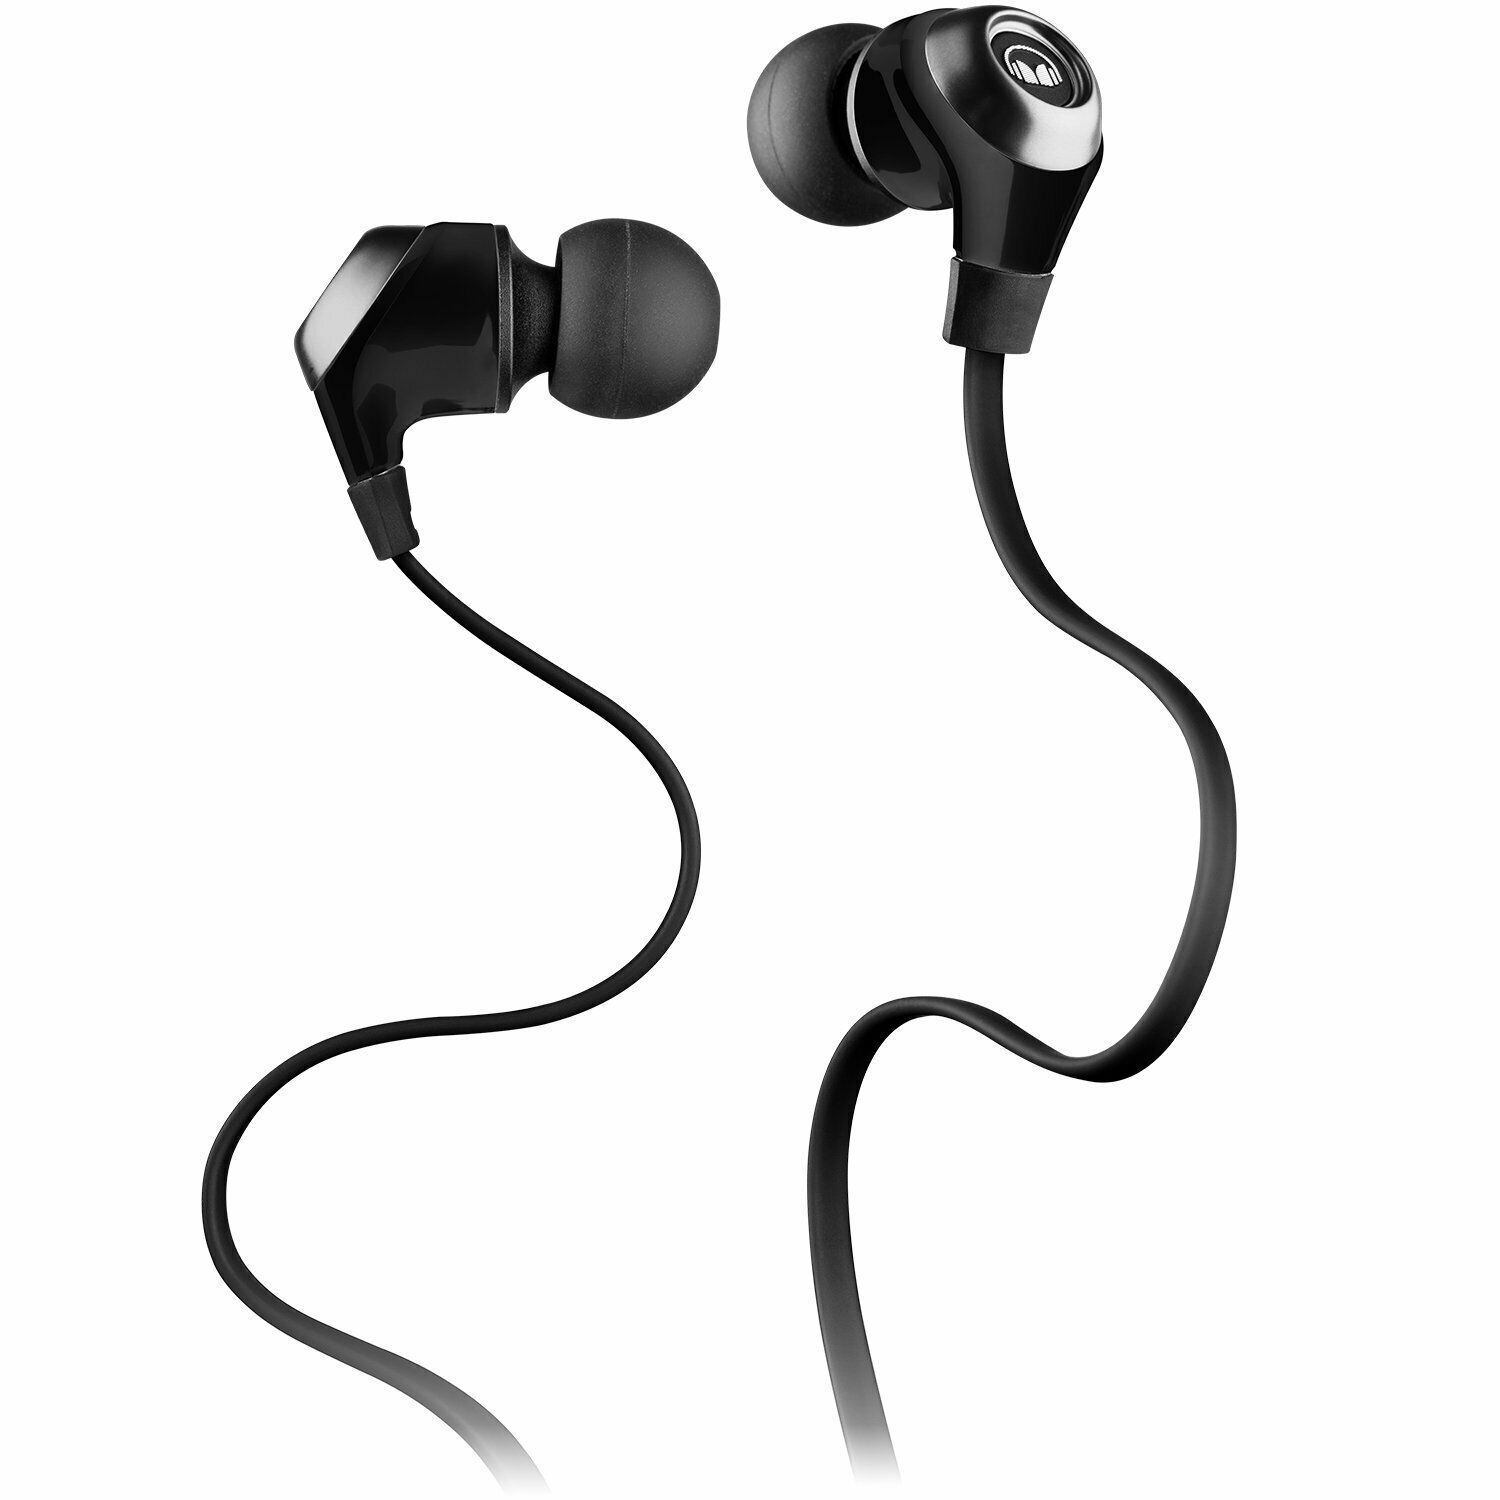 Primary image for Monster Nlite in-Ear Headphones - Black